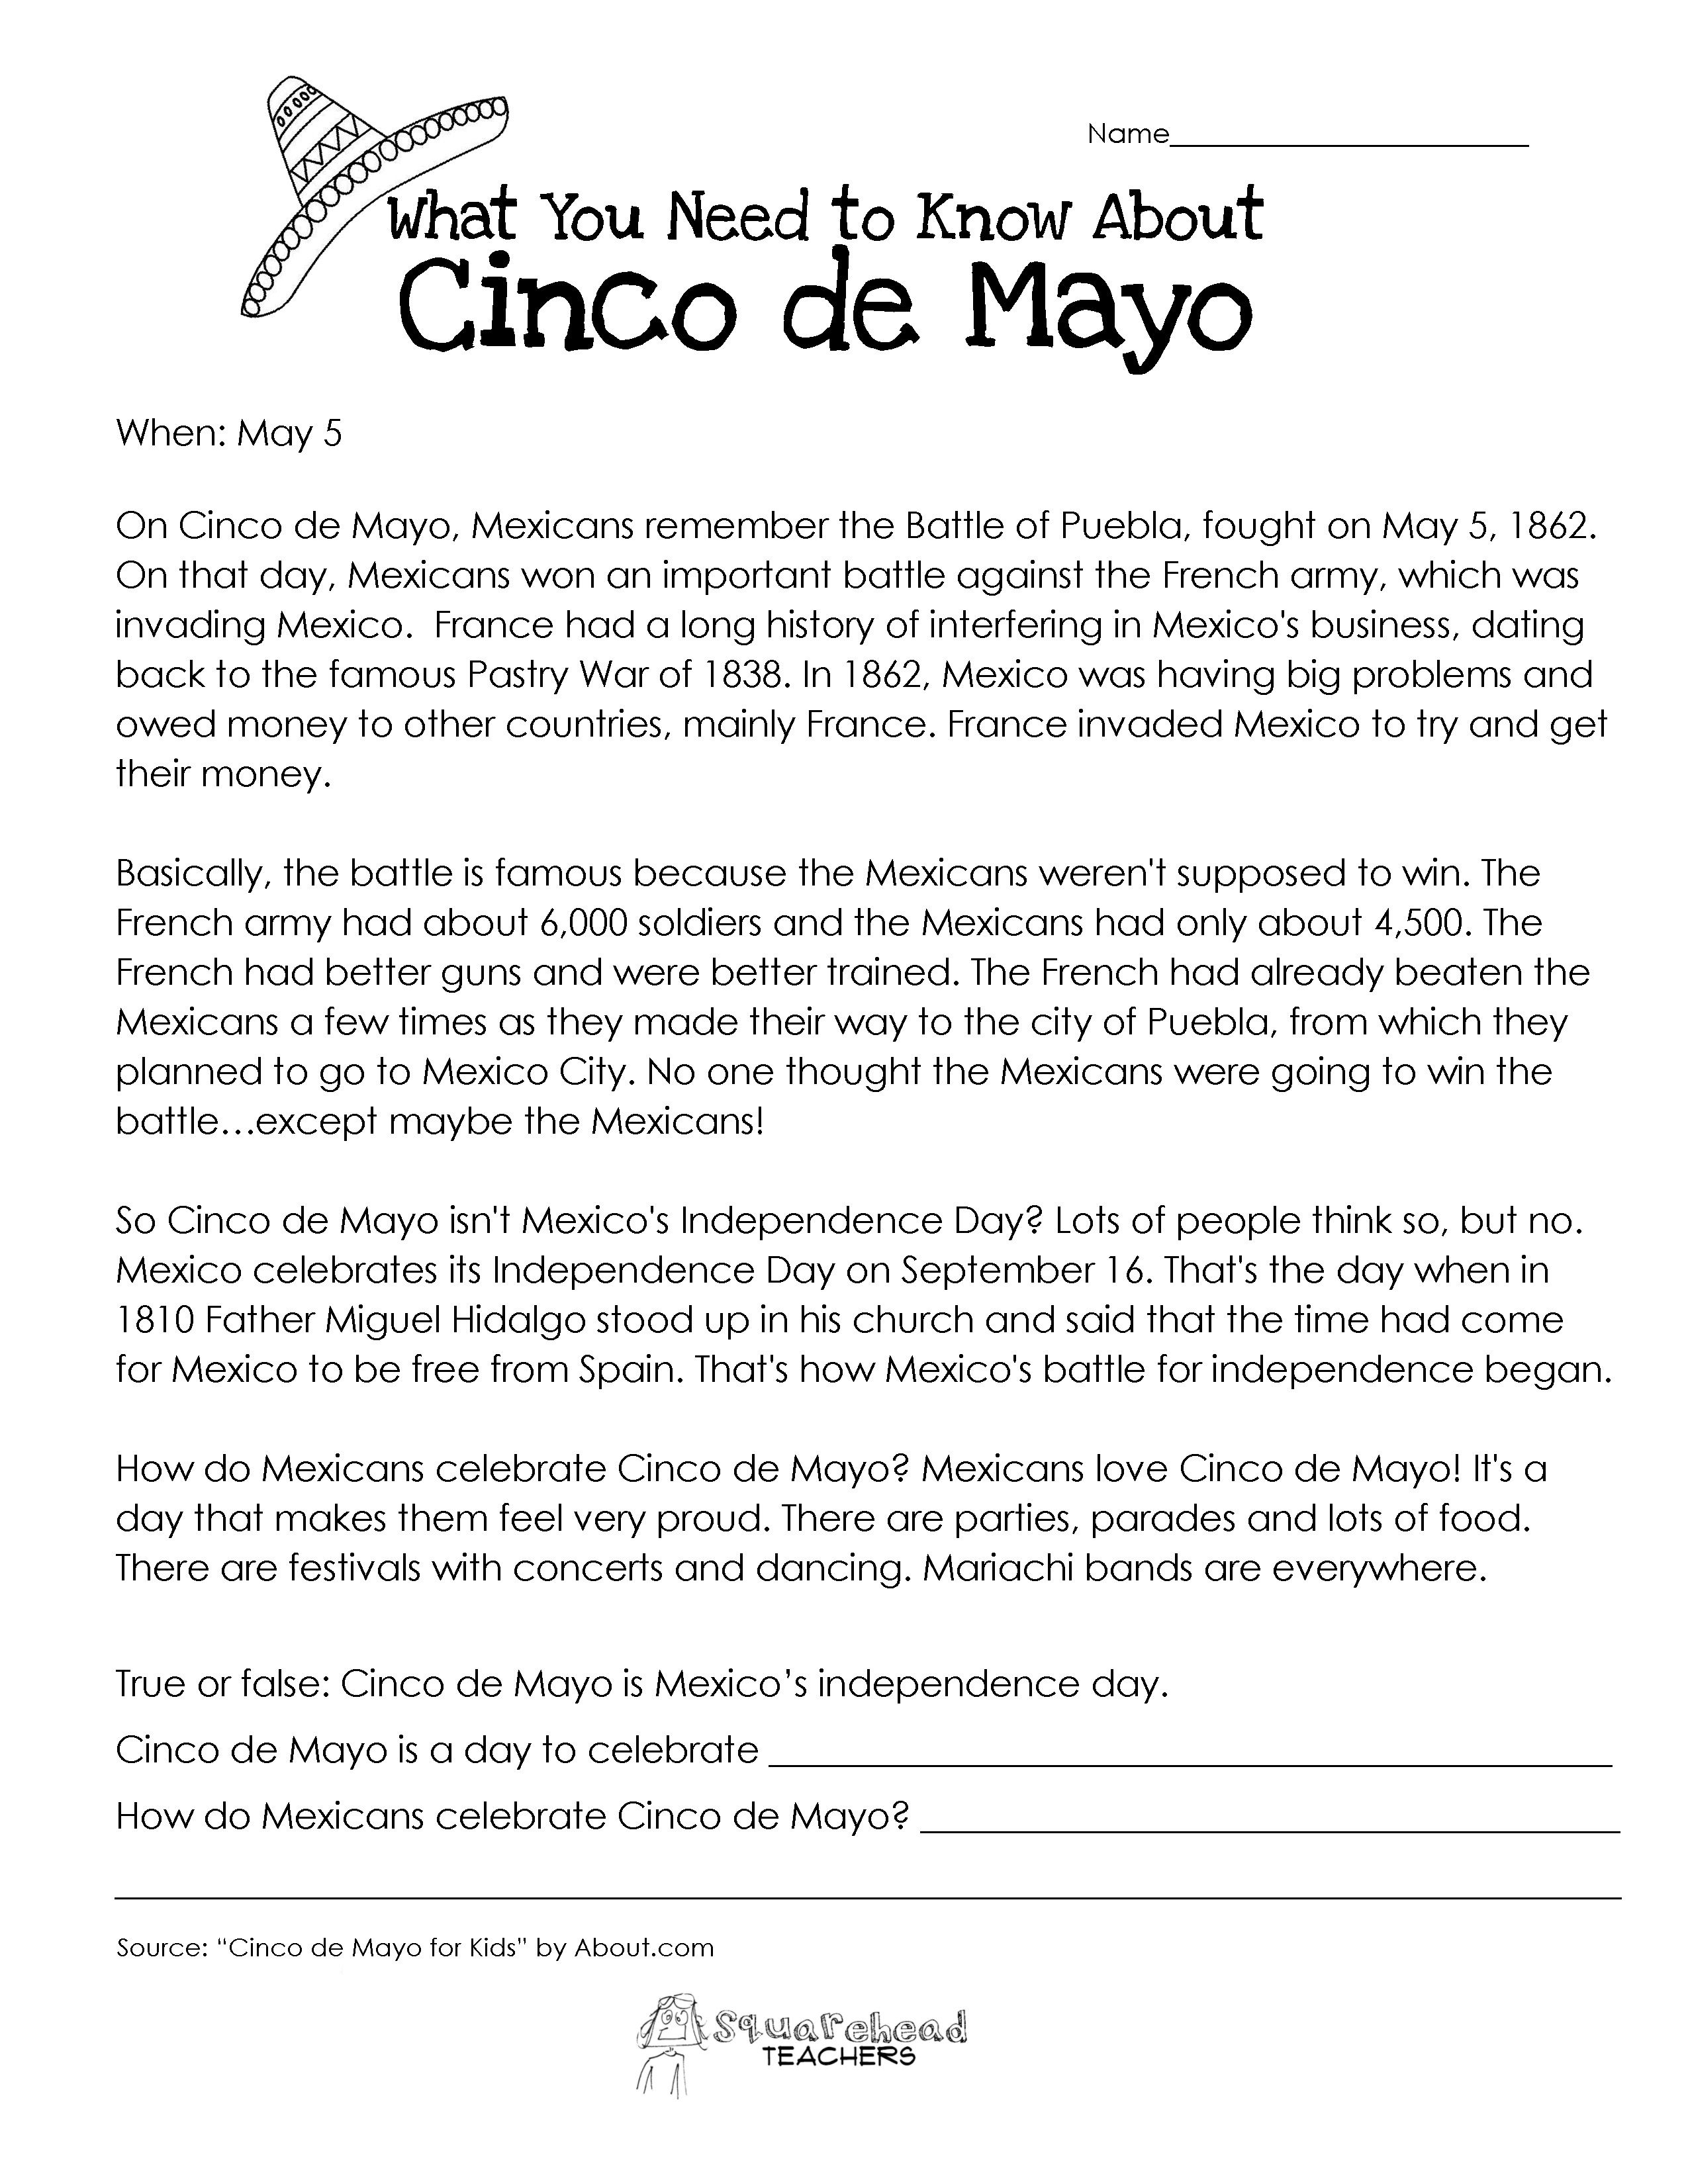 No Cinco De Mayo Isn T Mexico S Independence Day That S